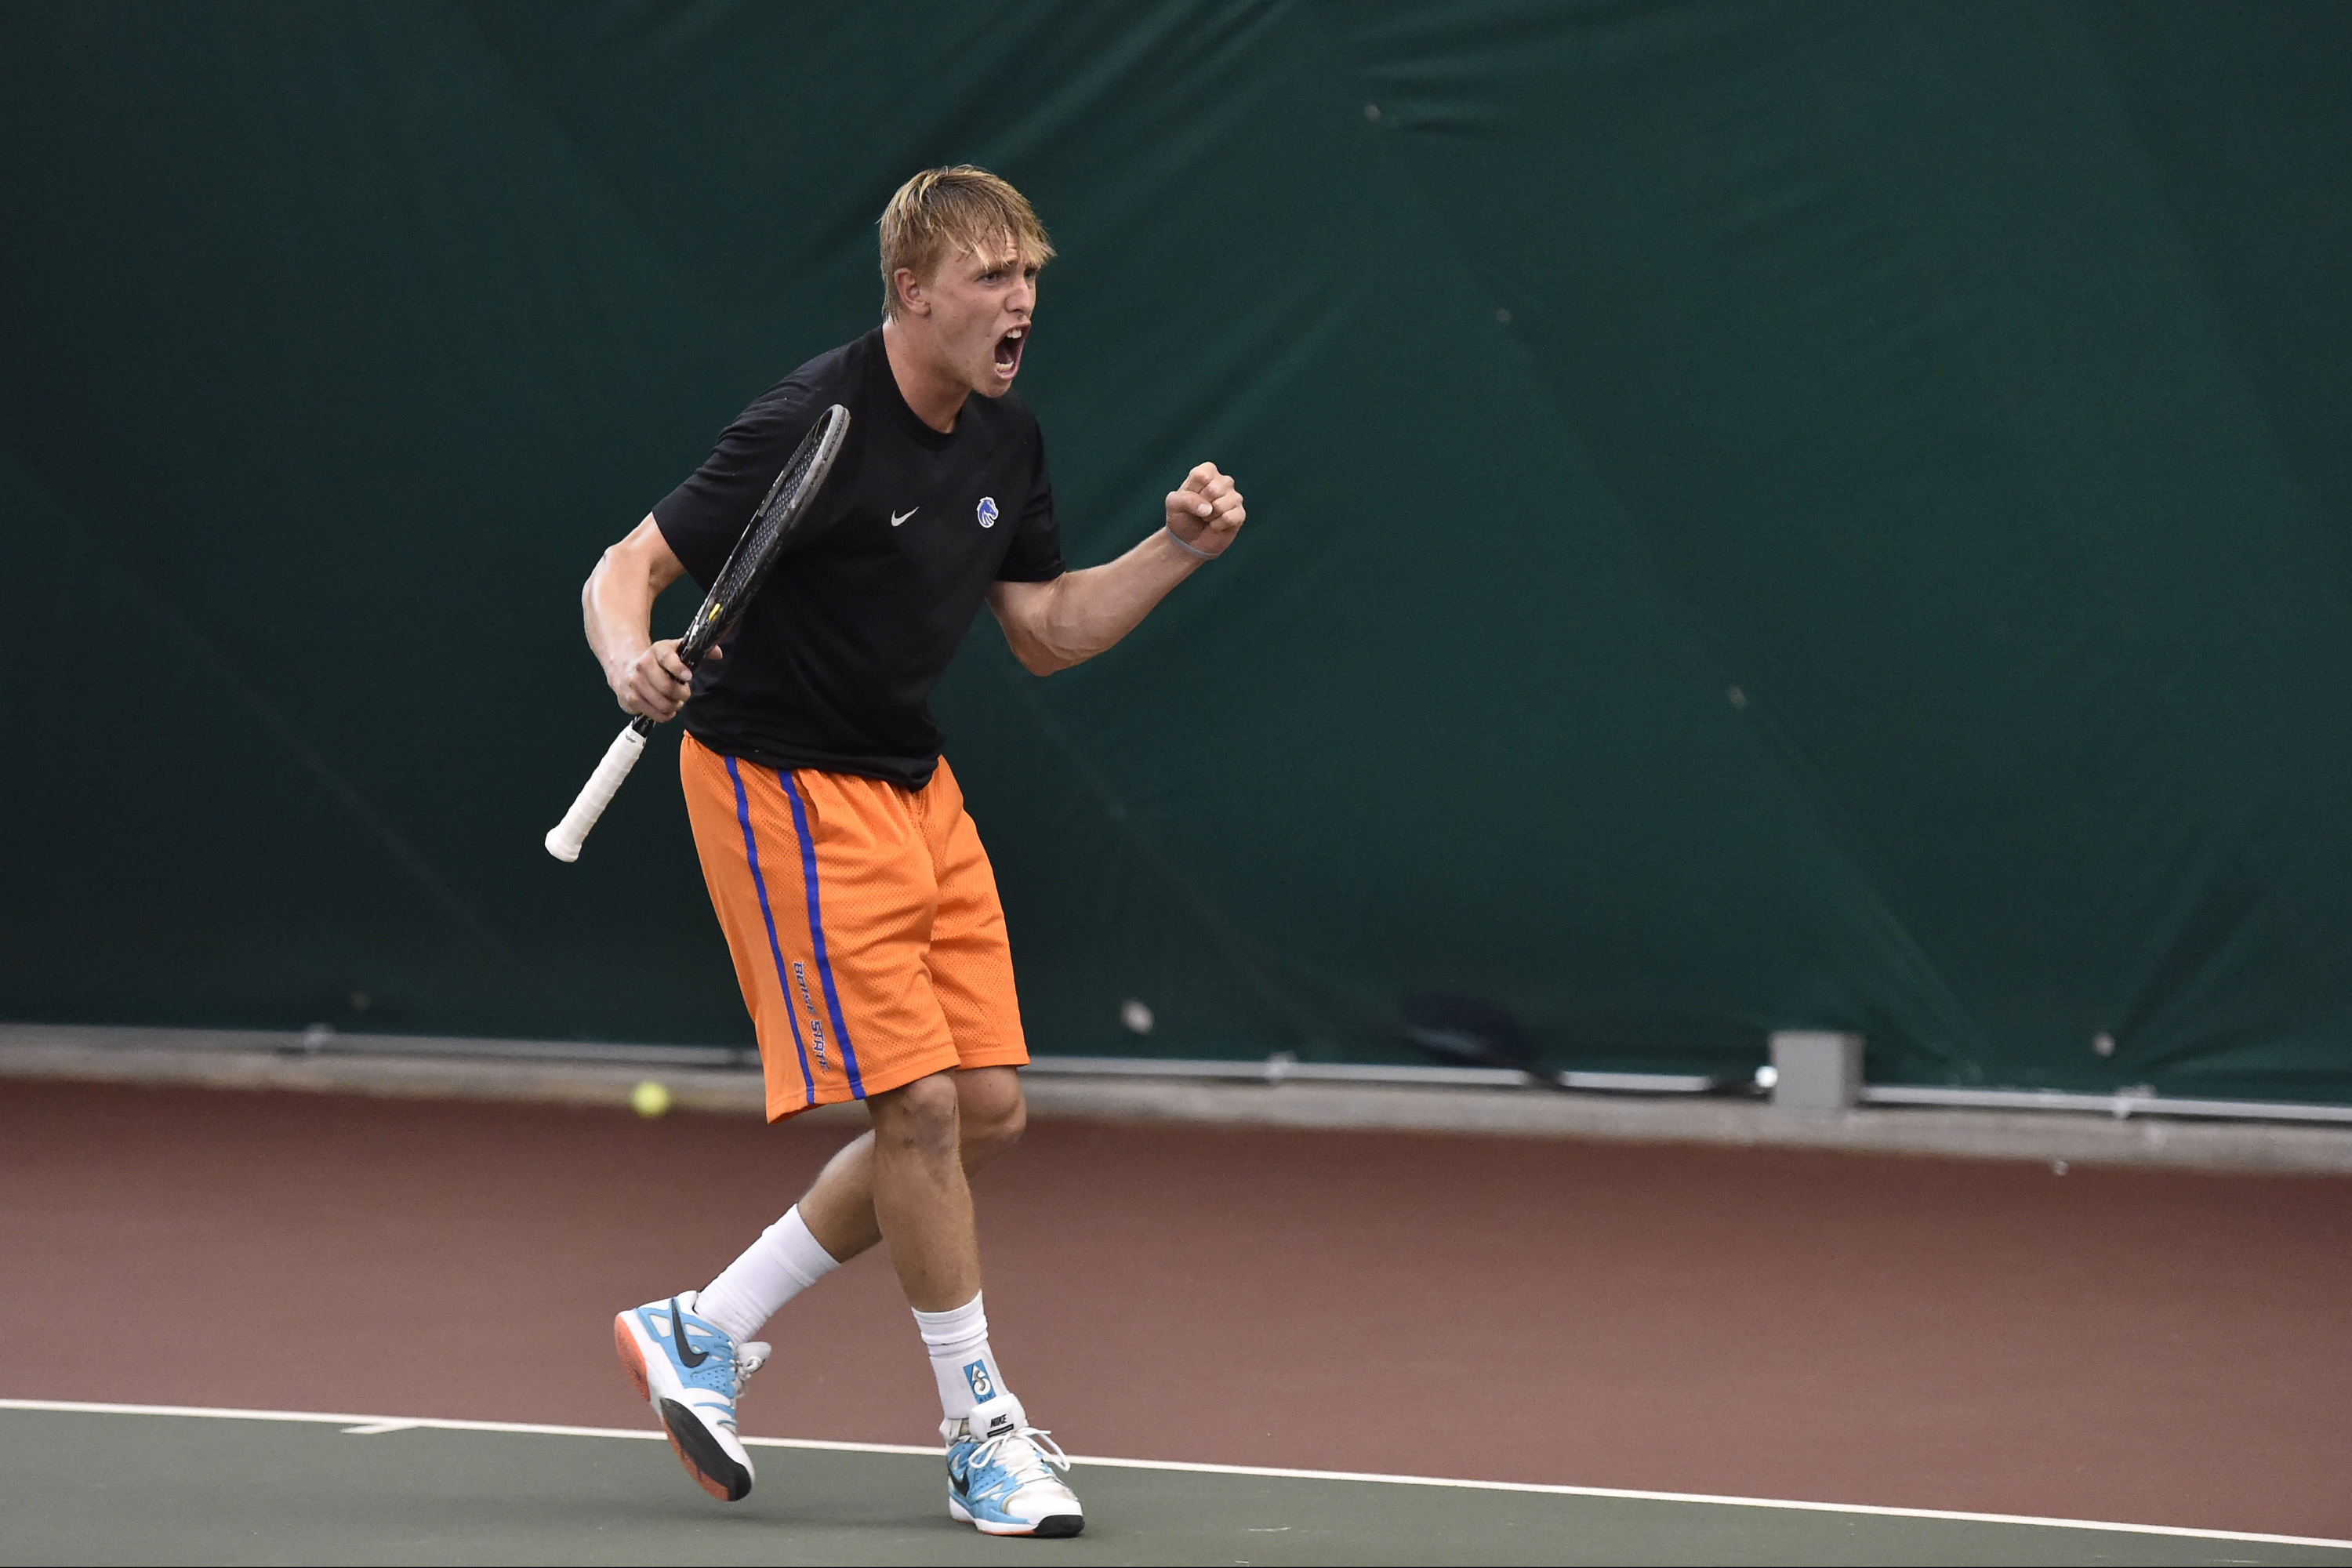 Toby Mitchell will lead the Broncos playing No. 1 singles.